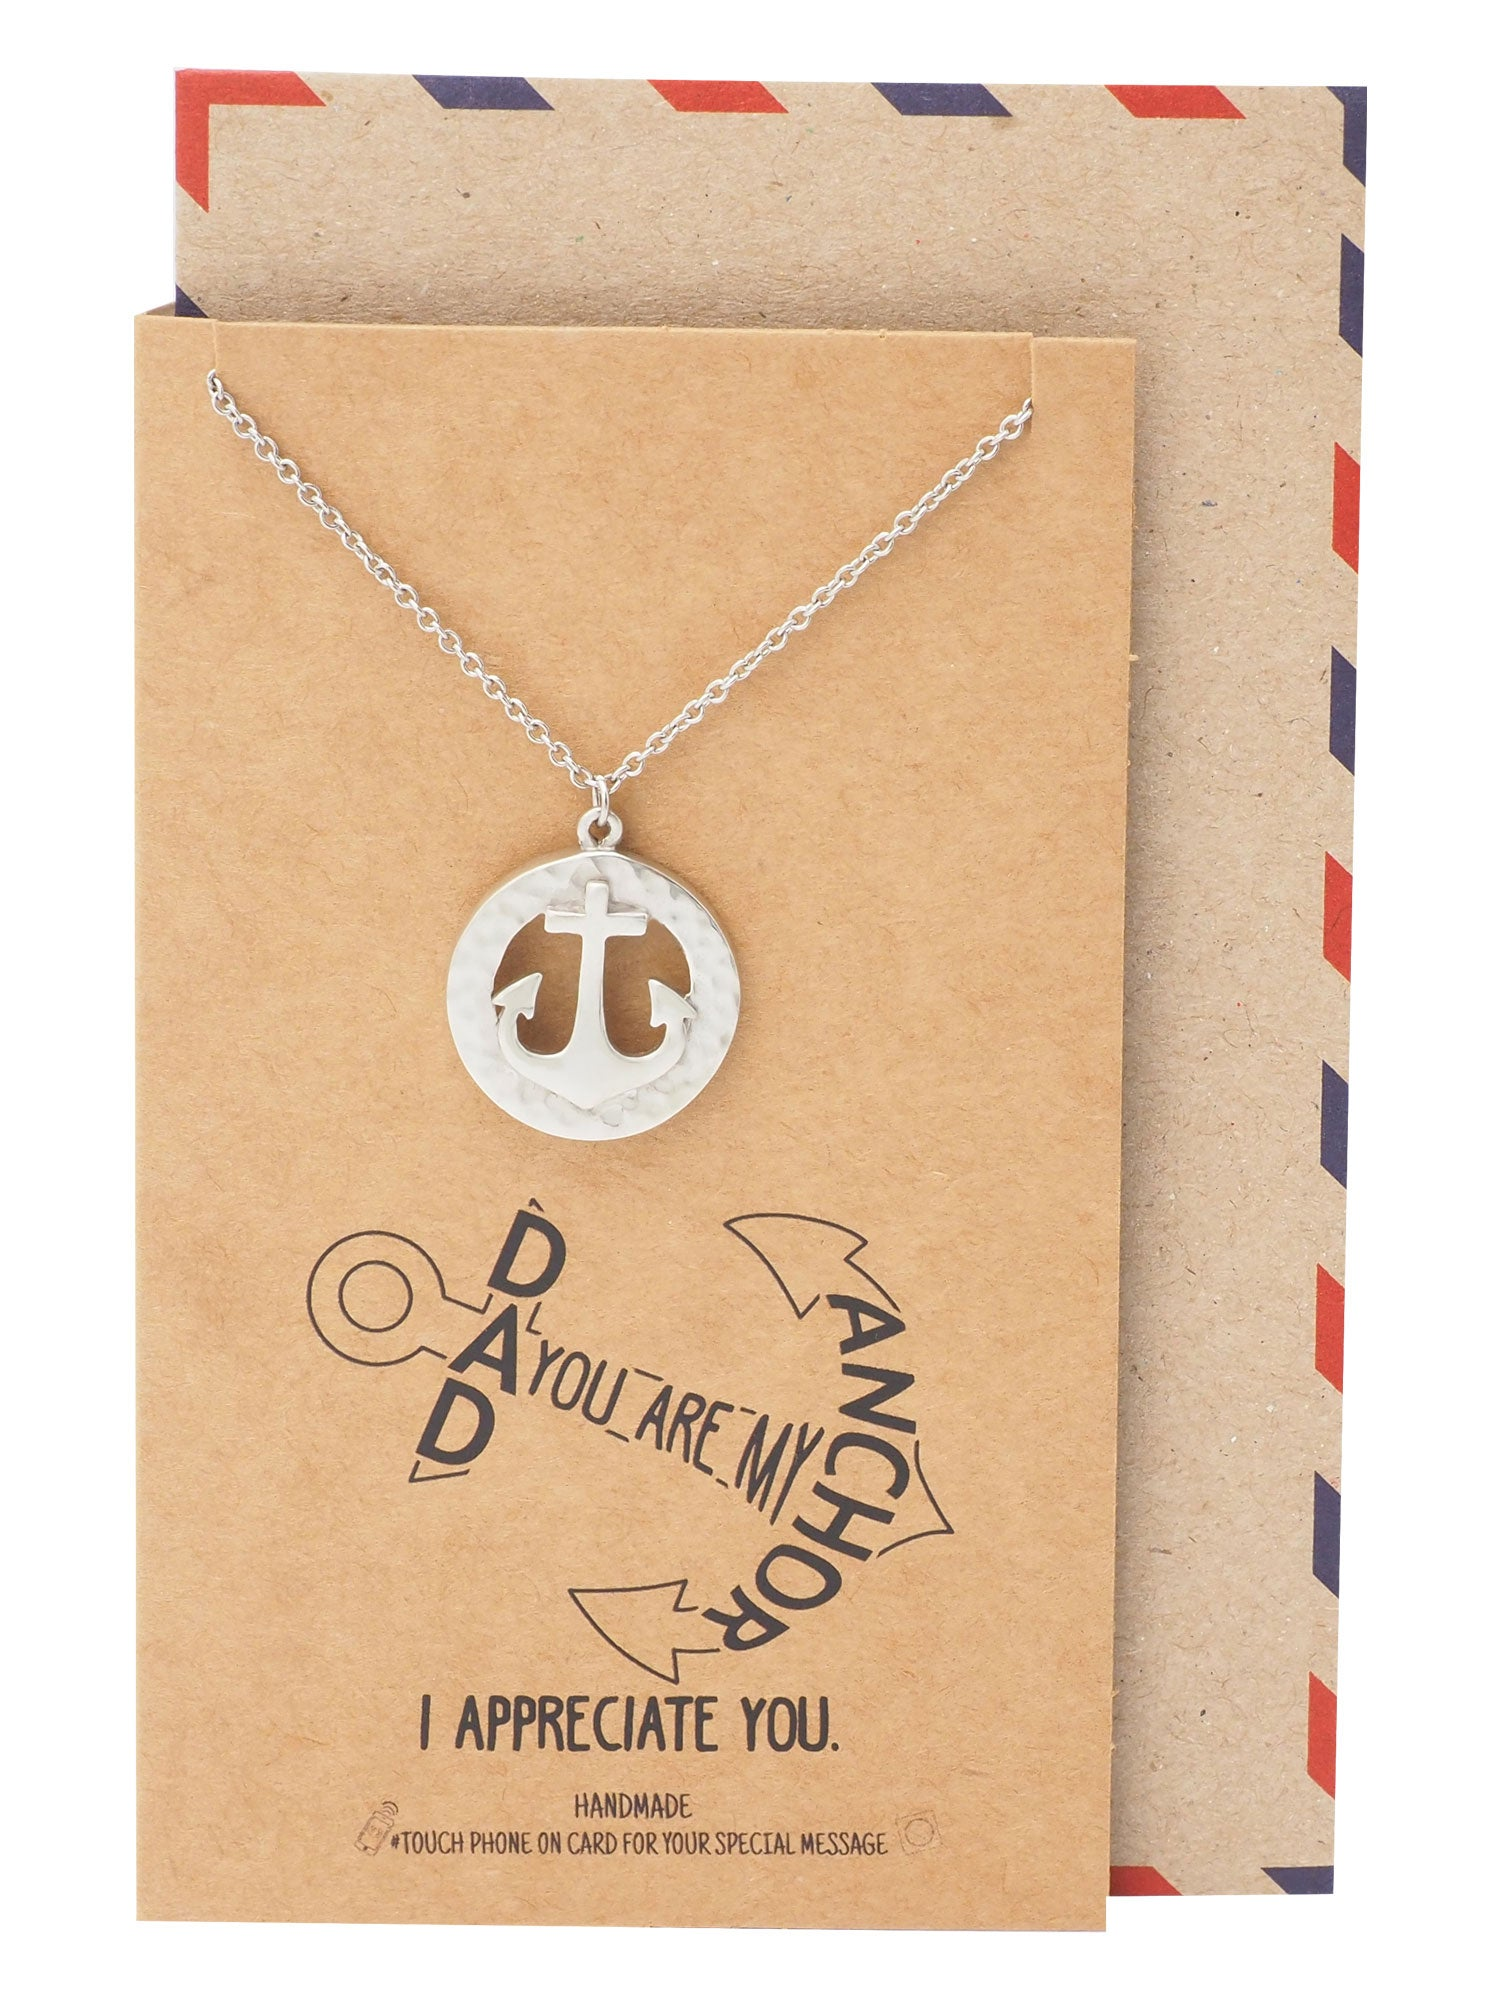 Inno Ring and Anchor Pendant Necklace, Gifts for Dad, Appreciation Necklace With Greeting Card